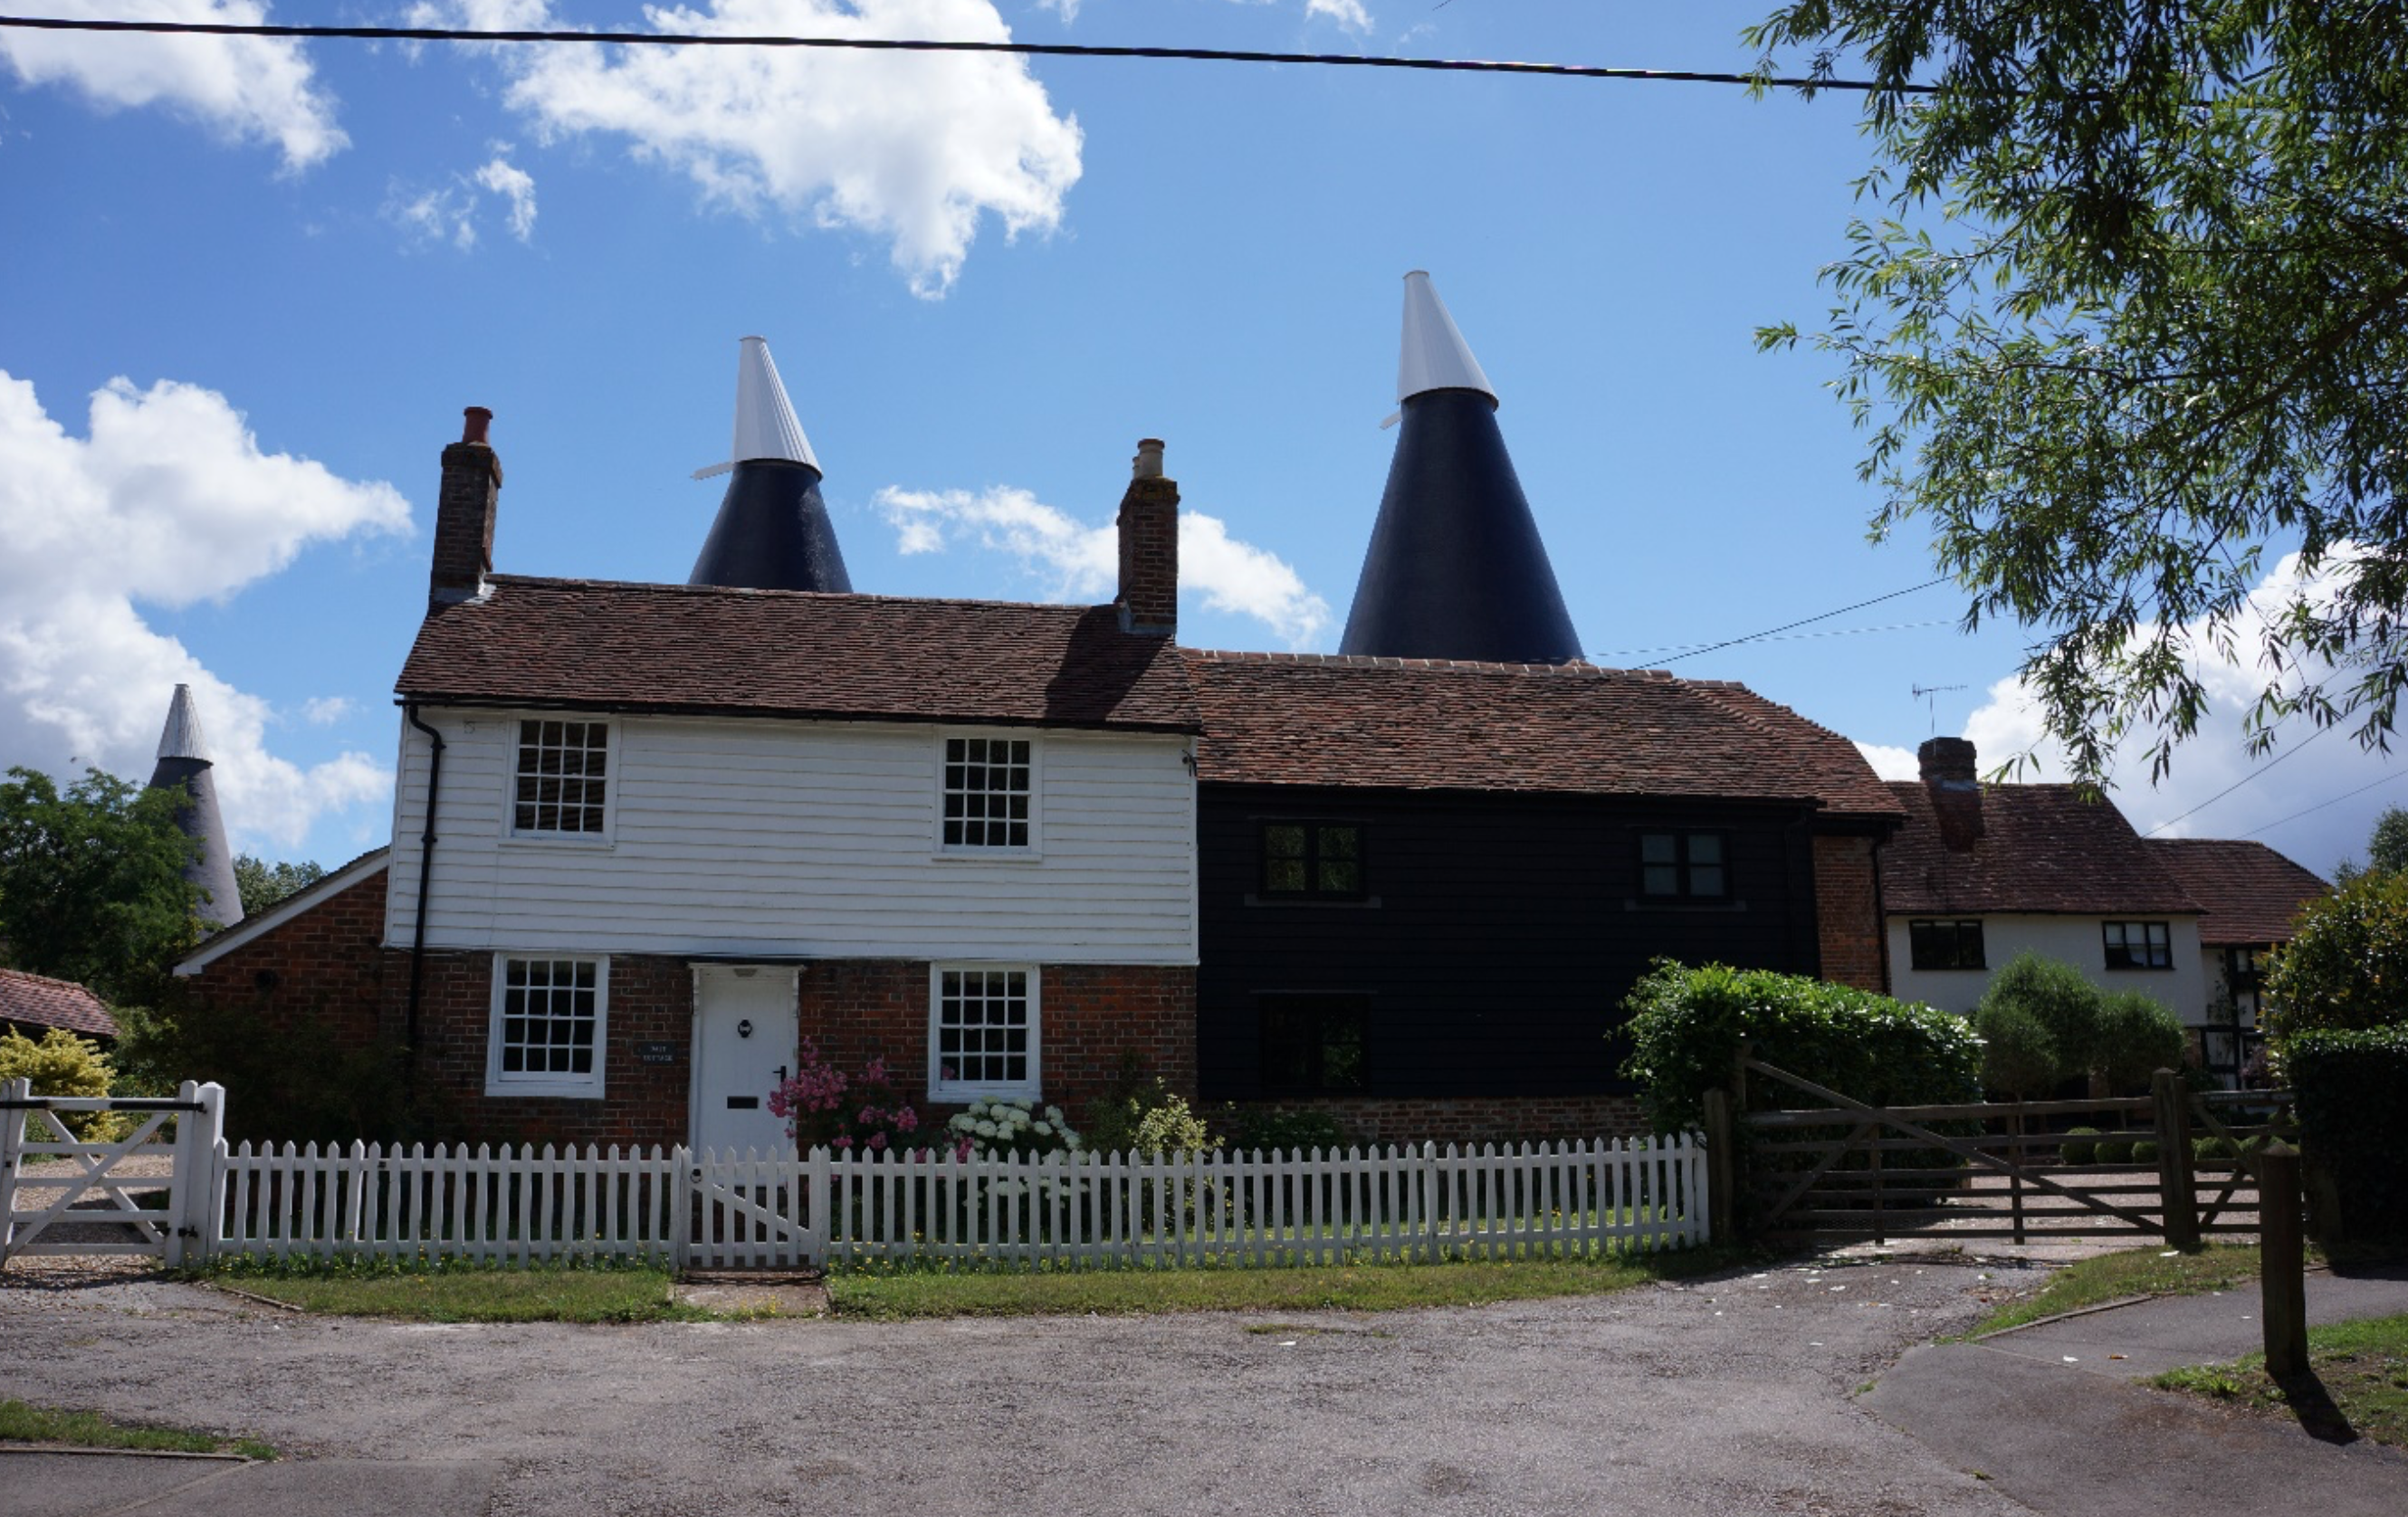 outside view of Oast Cottage Laddingford